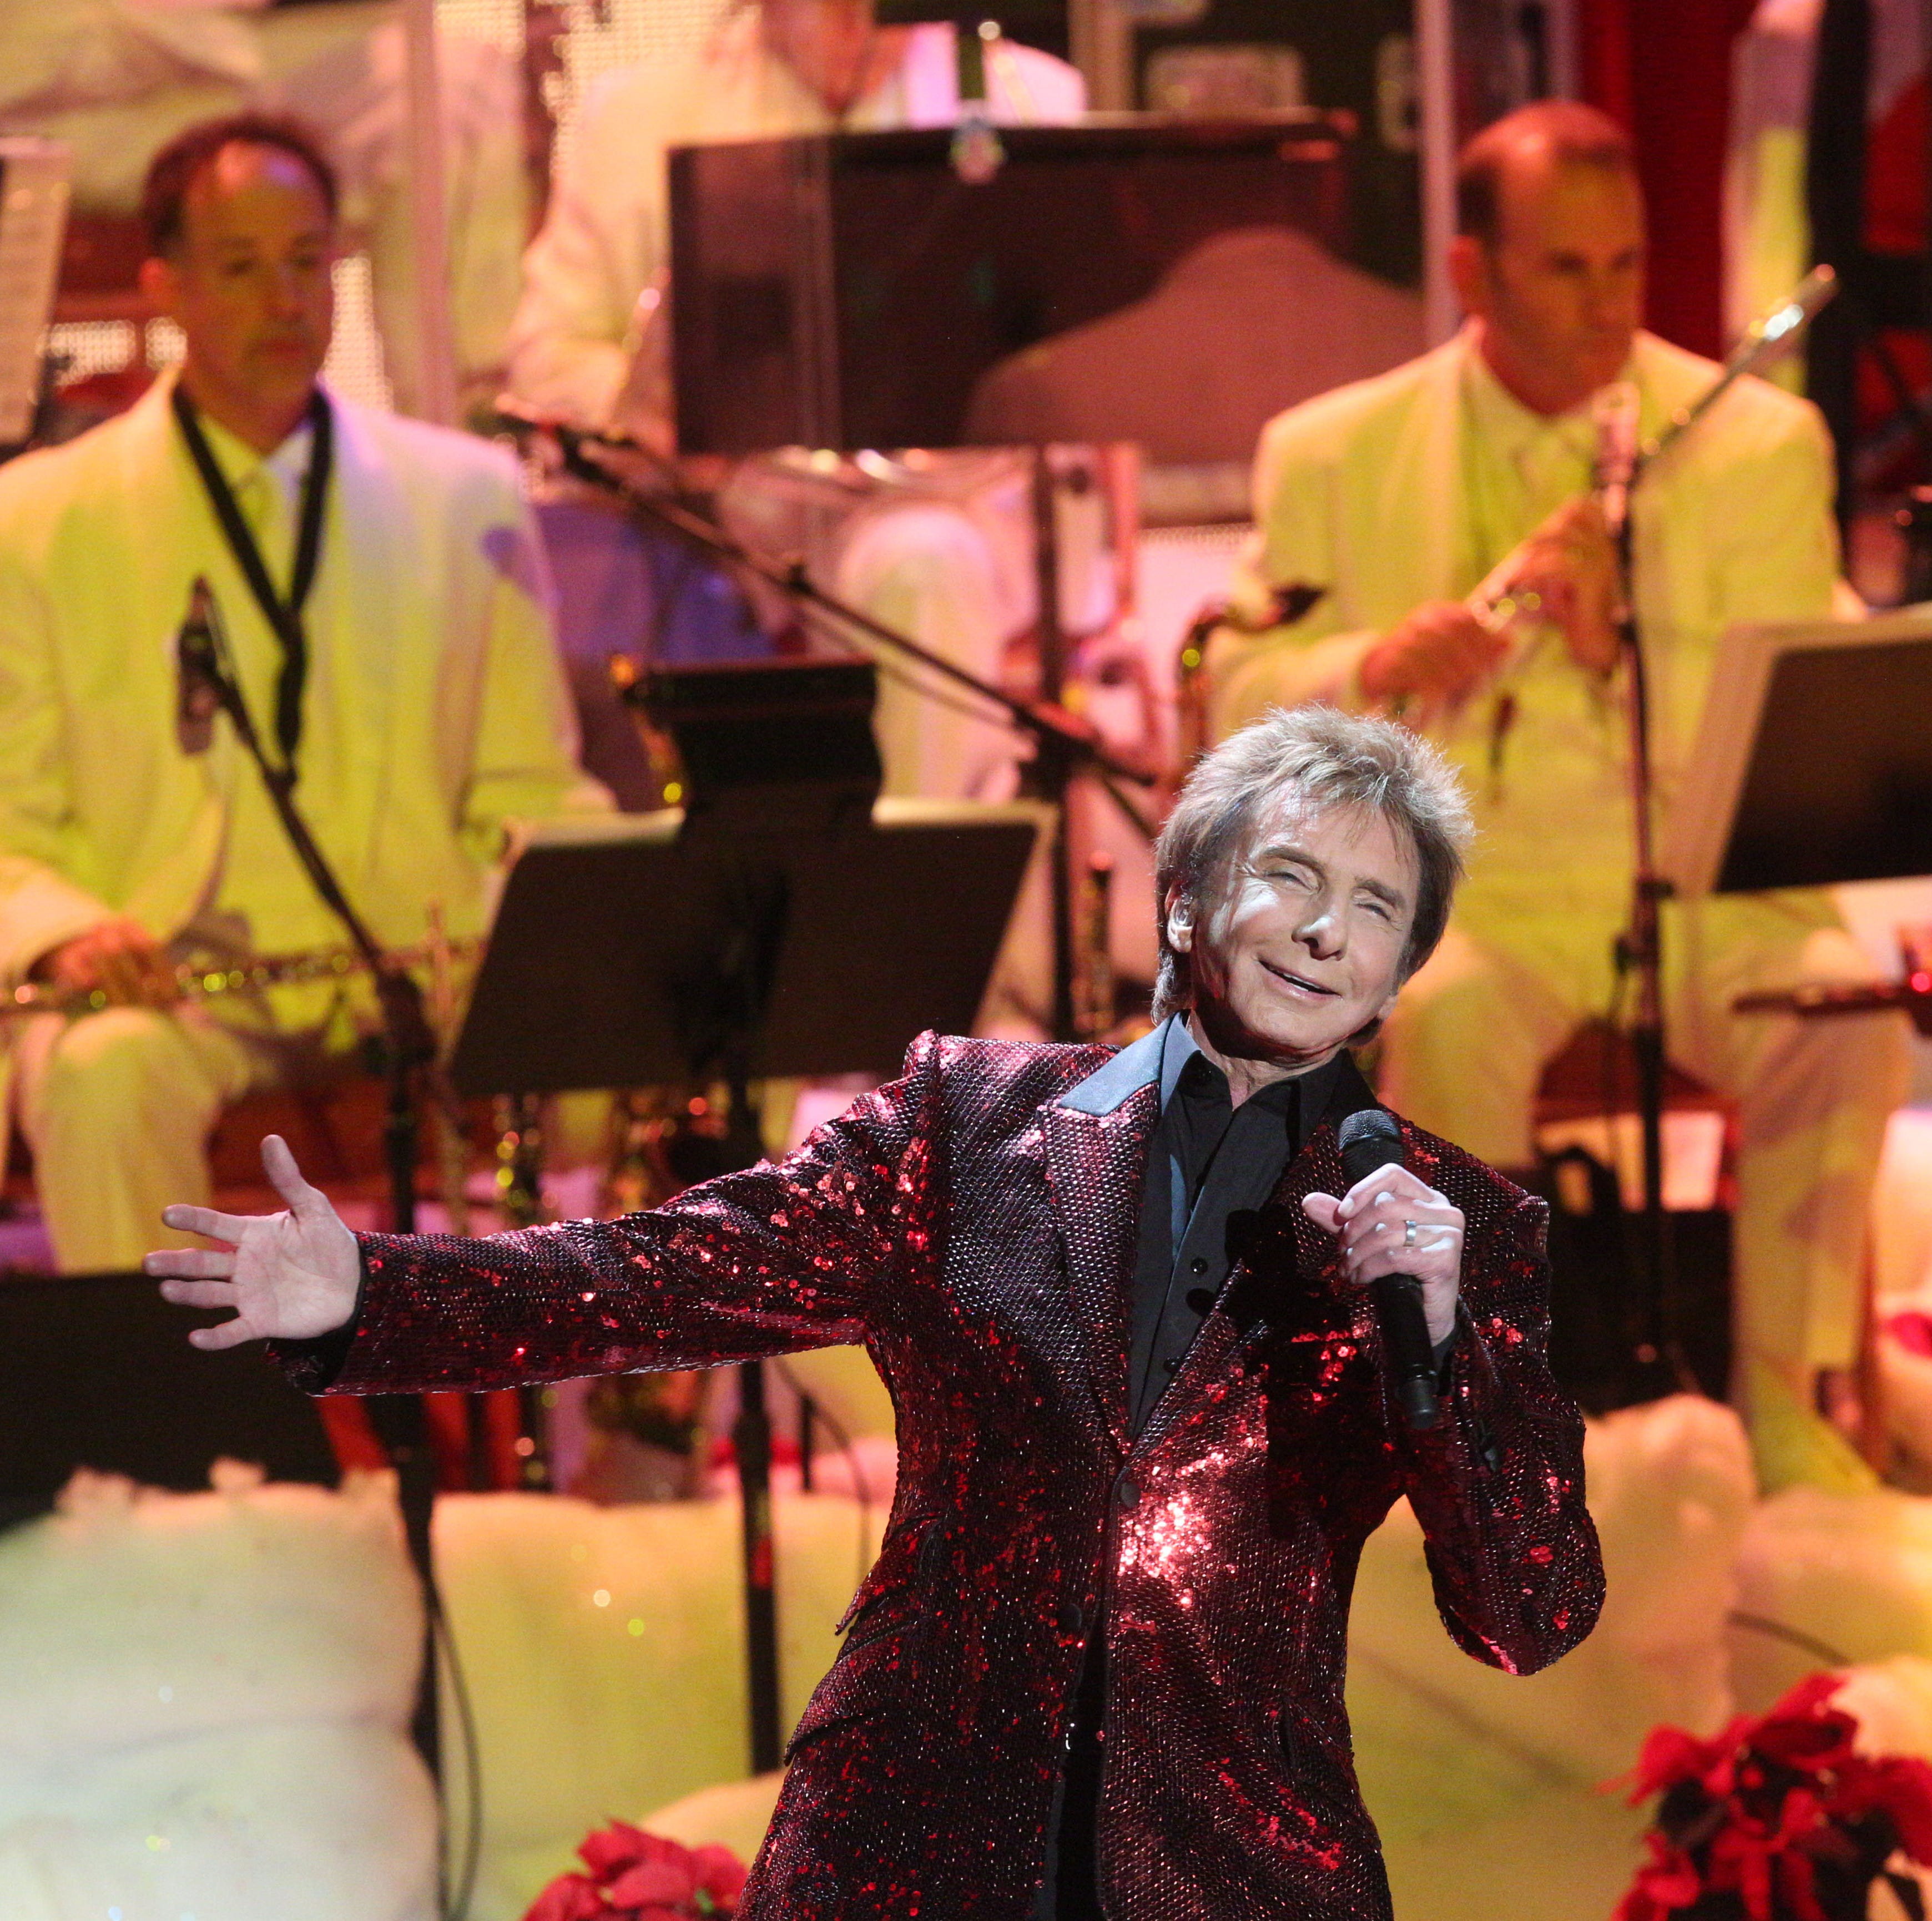 Palm Springs' Barry Manilow wants to give $100,000 to one lucky high school band